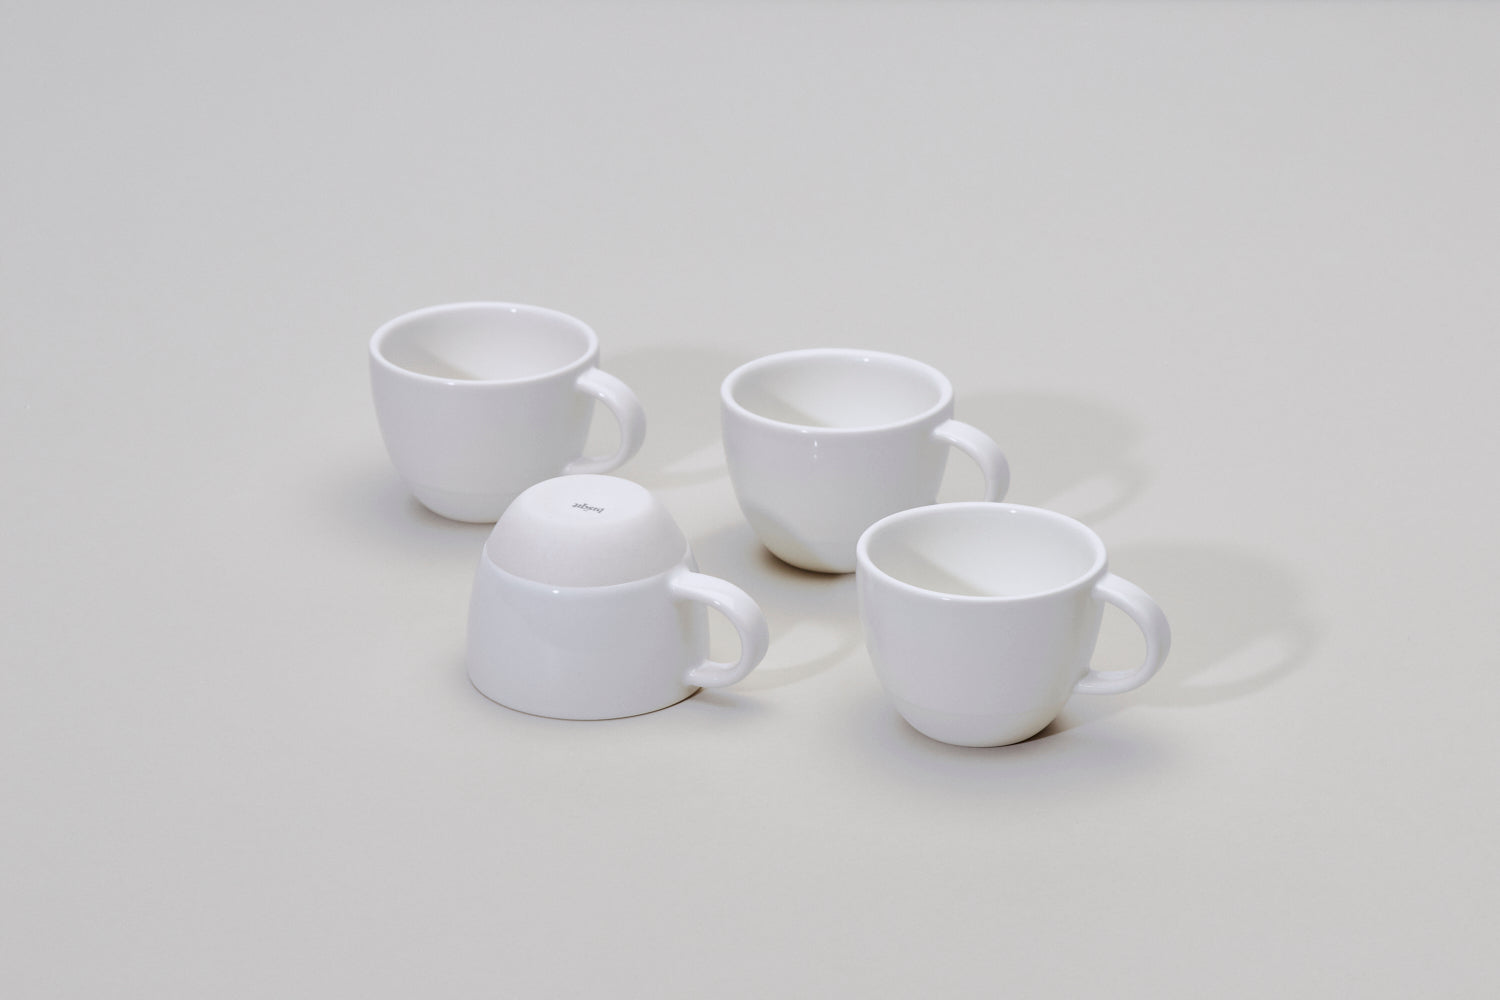 Simple white cup with handle